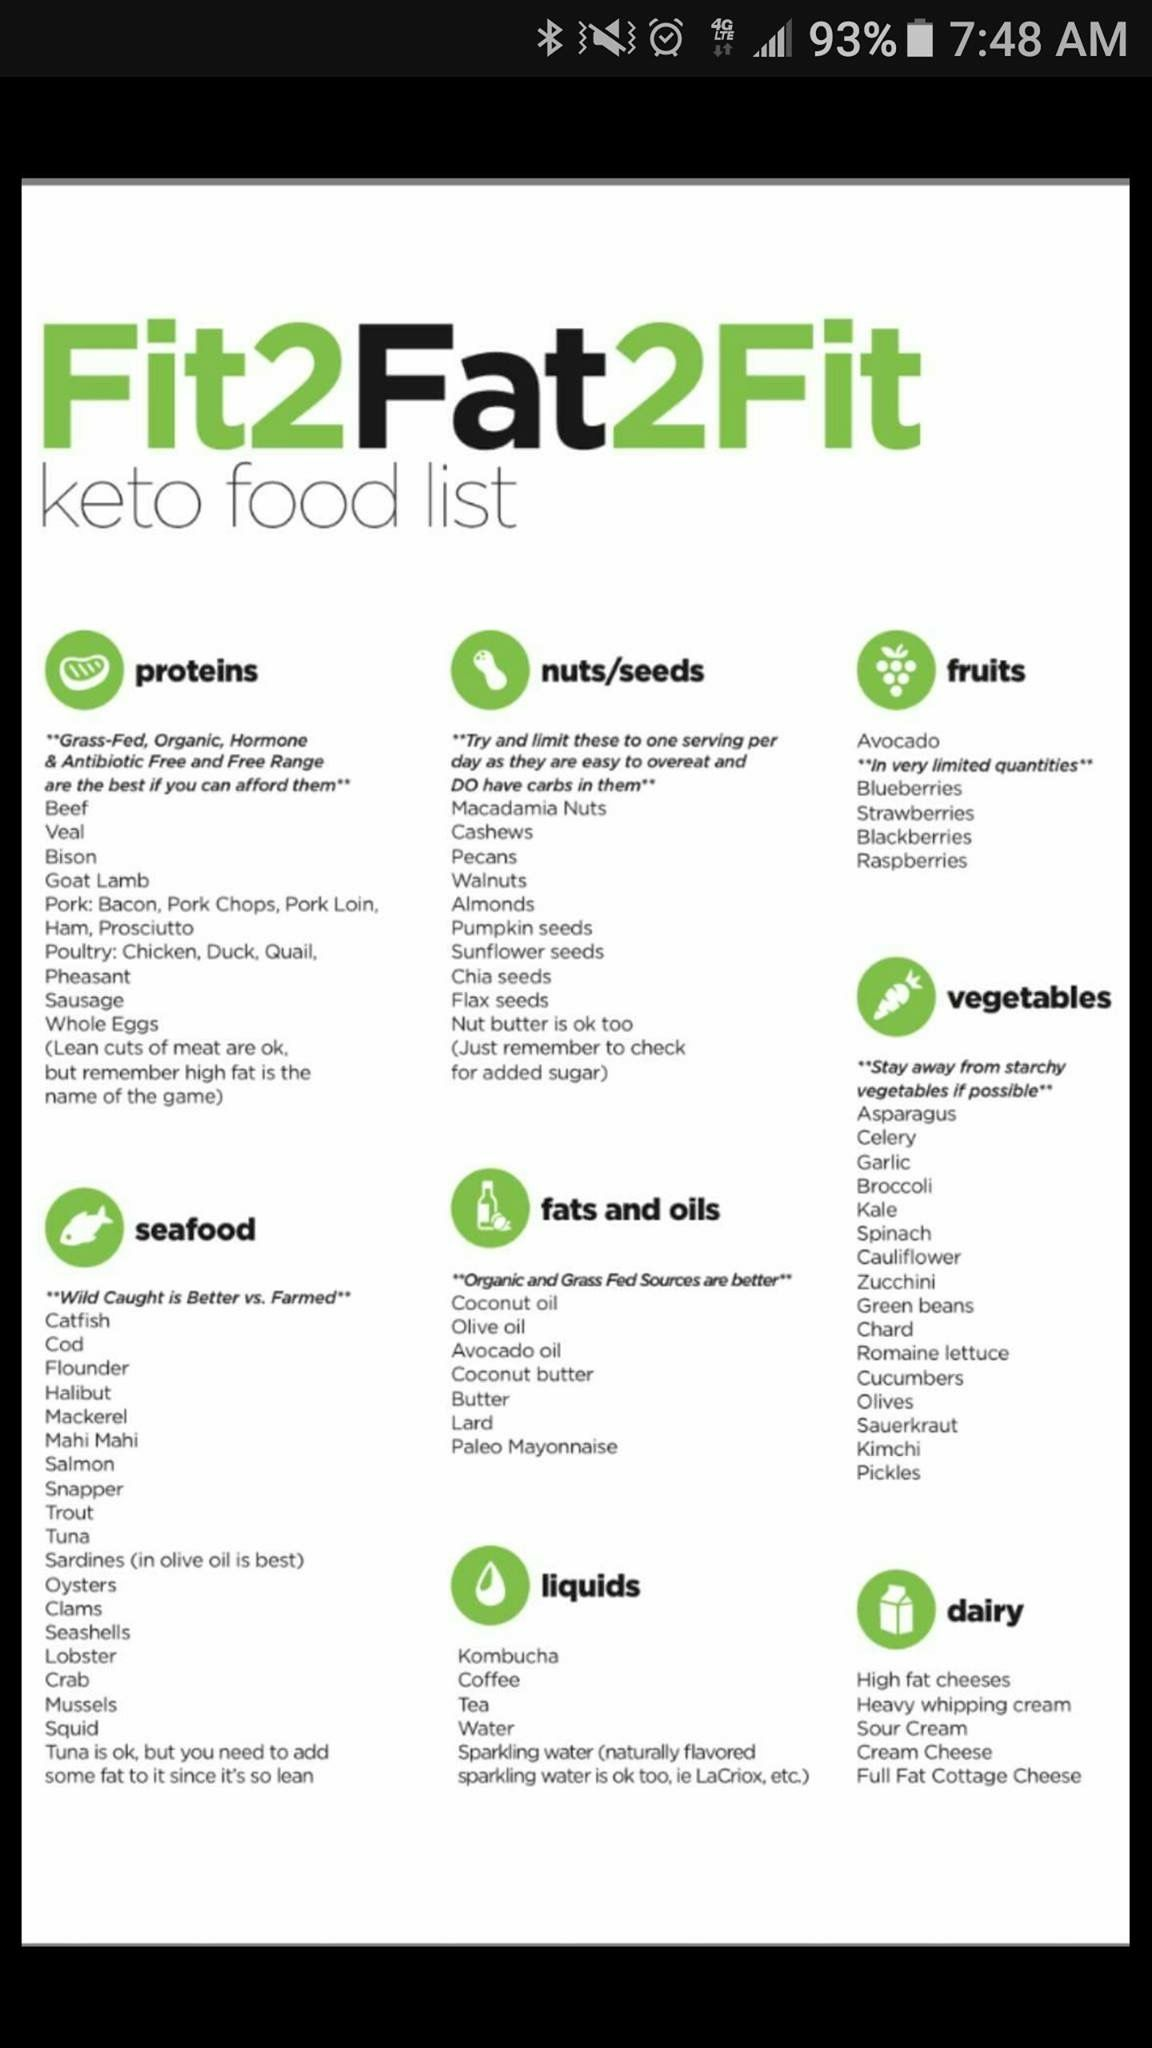 Pin by Megan Ziolkowski on Keto | Pinterest | Keto, Low carb and Clean eating